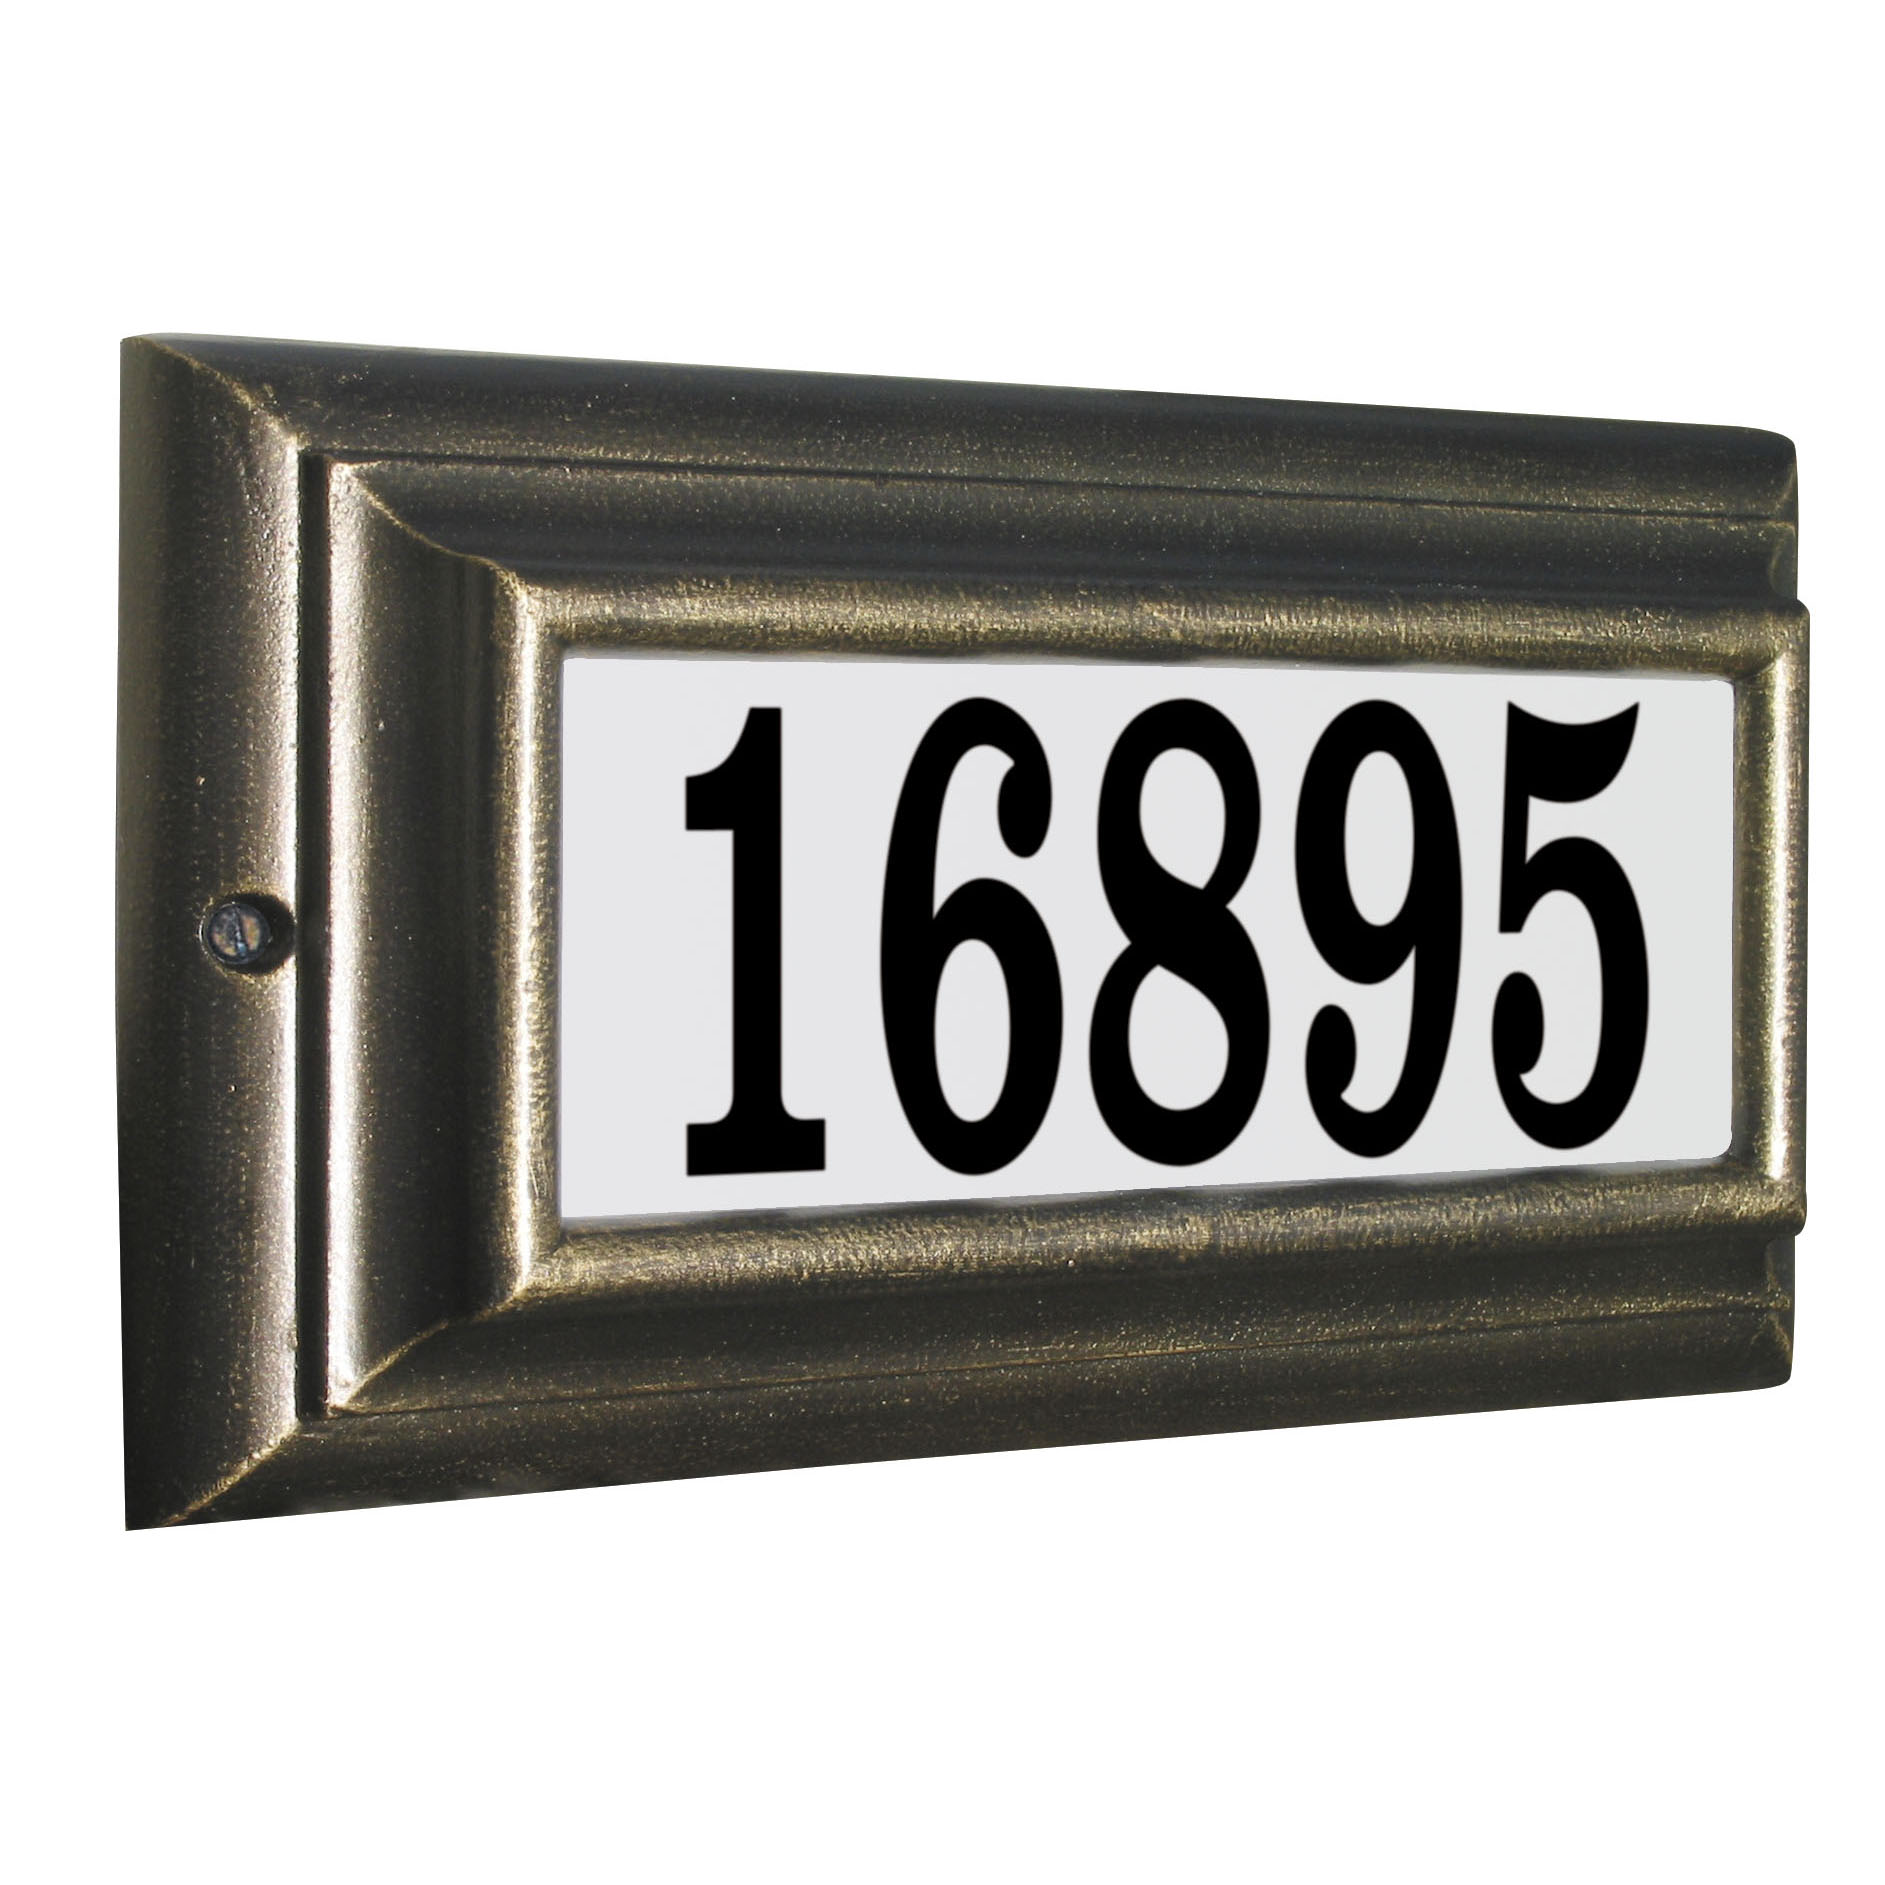 Edgewood Standard Lighted Address Plaque in Oil Rub Bronze Frame Color with LED Lights